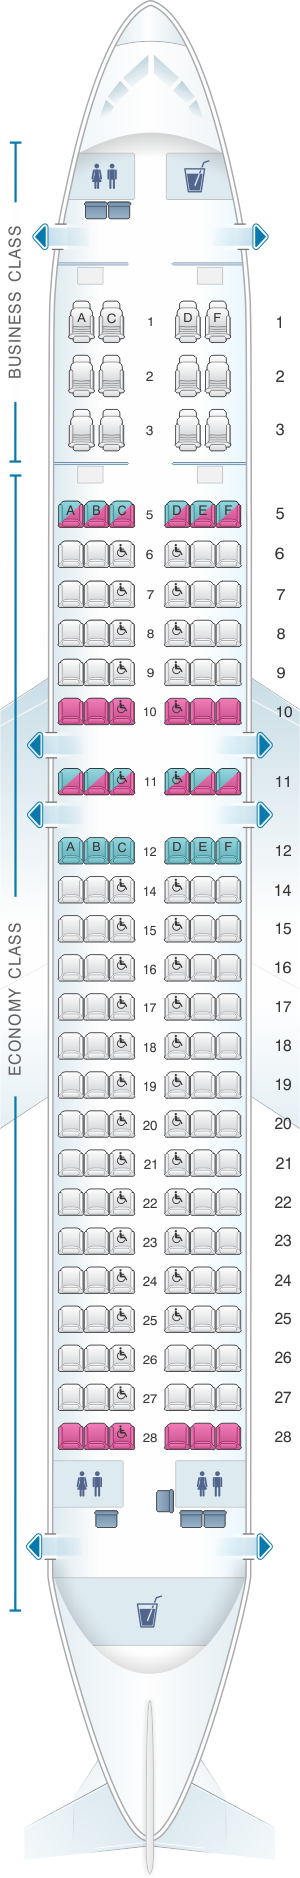 Seat map for SriLankan Airlines Airbus A320 Config. 1